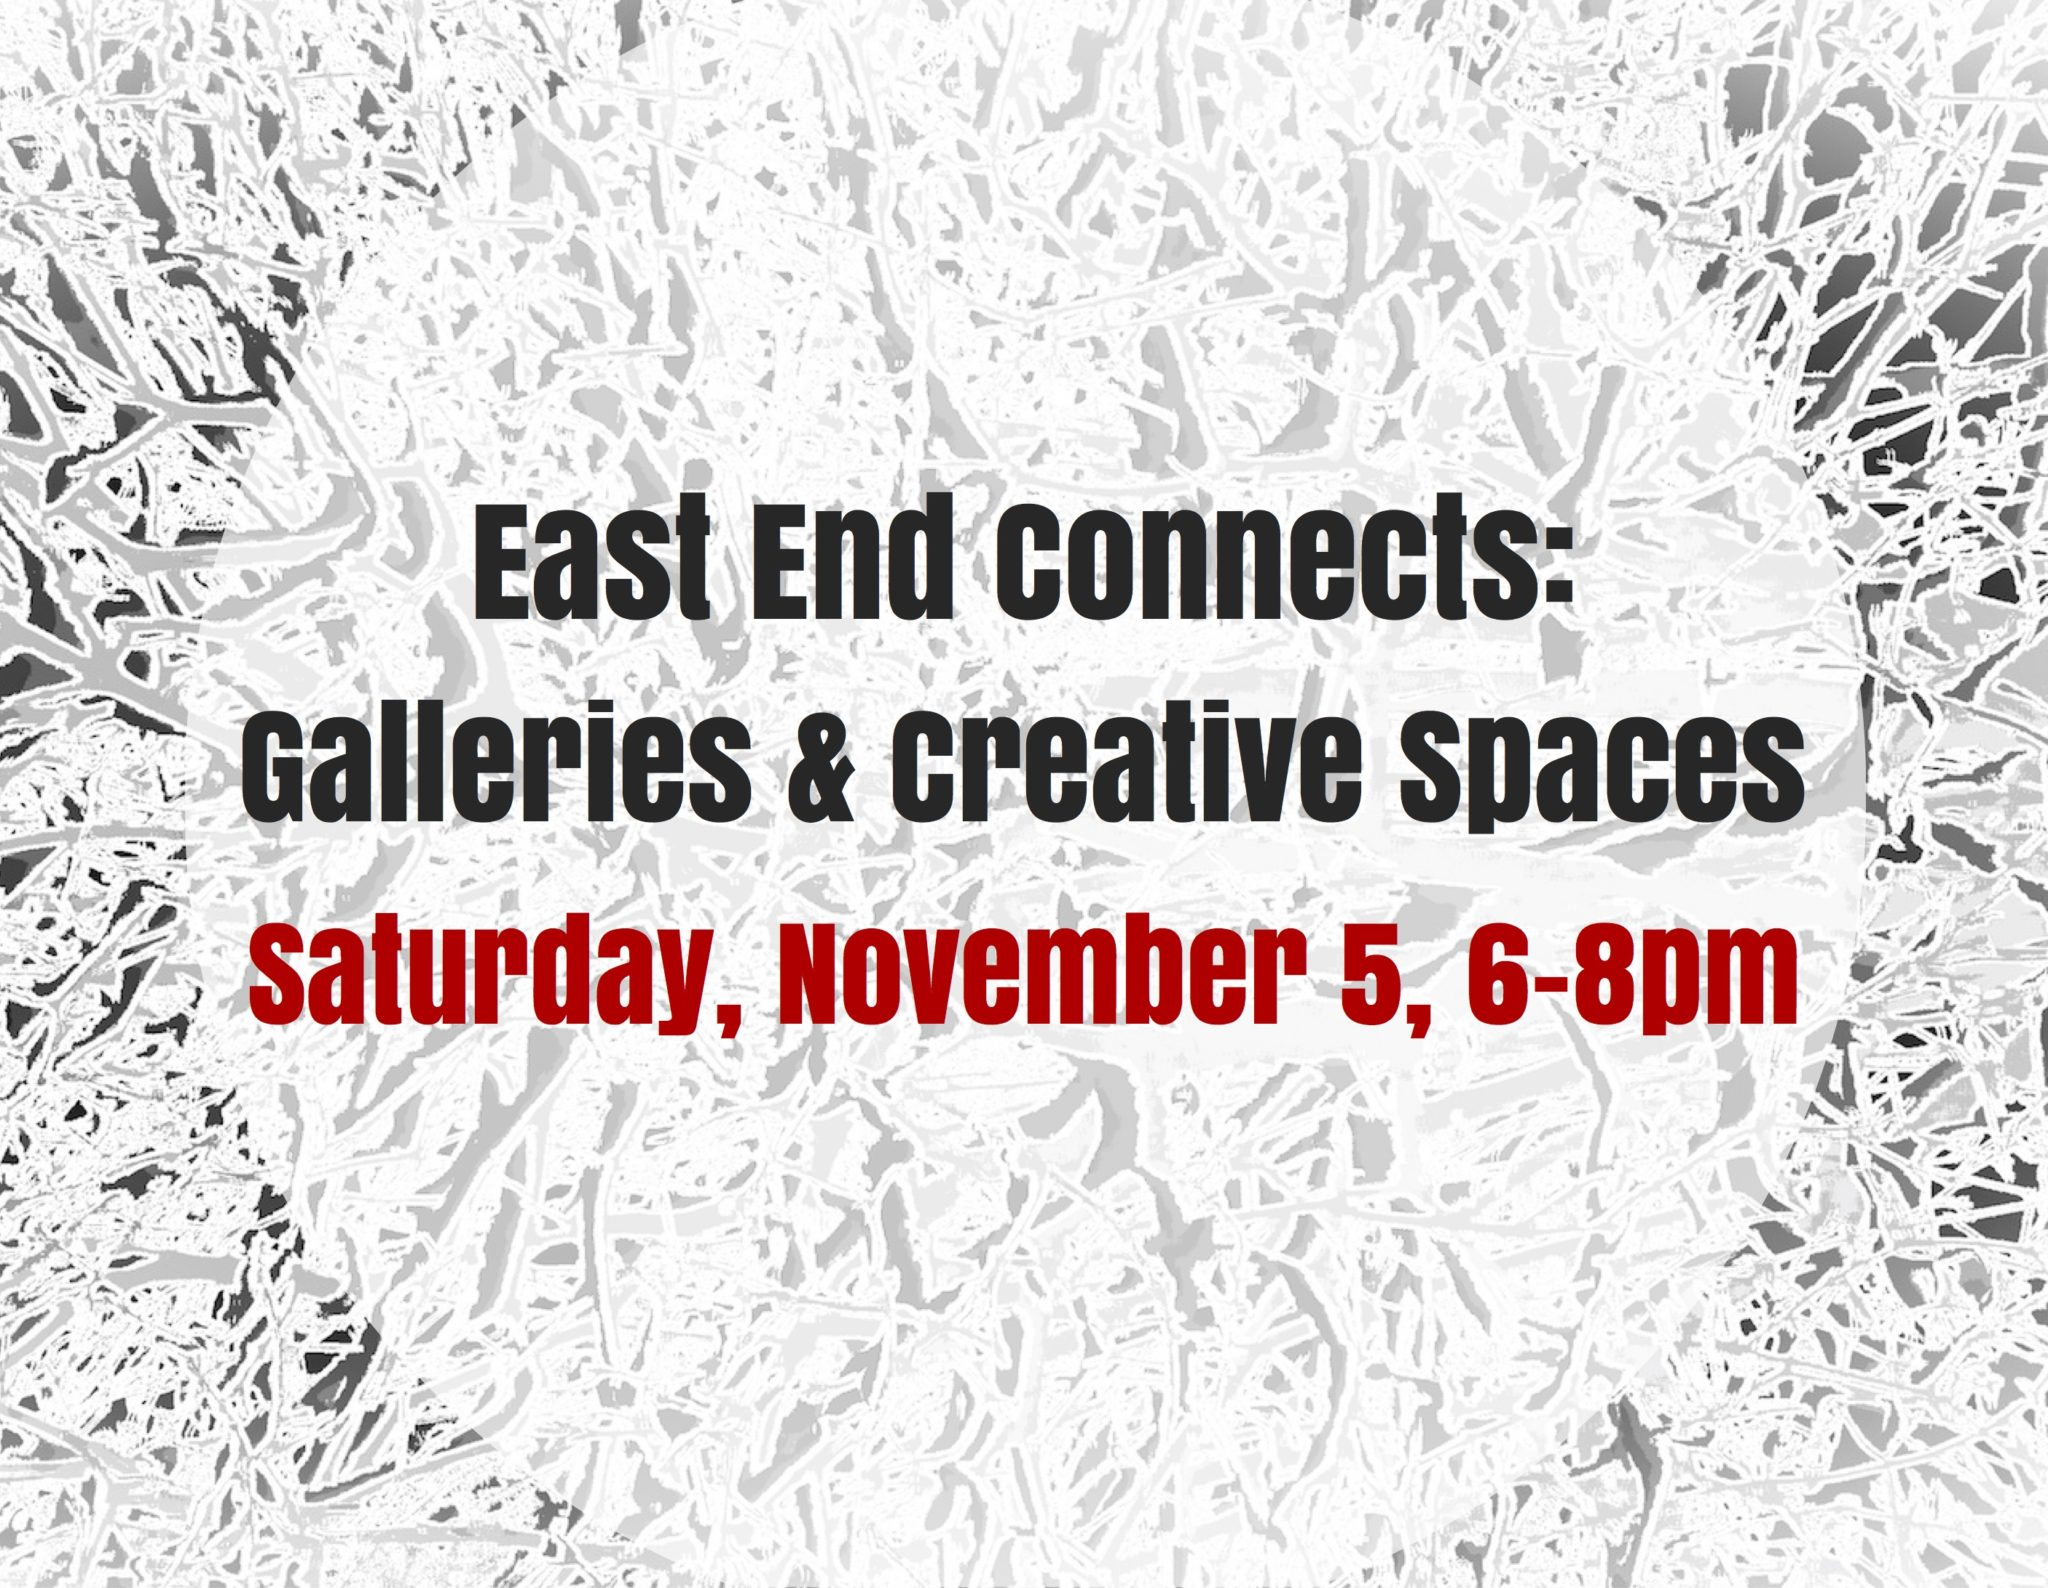 East End Connects: Galleries & Creative Spaces